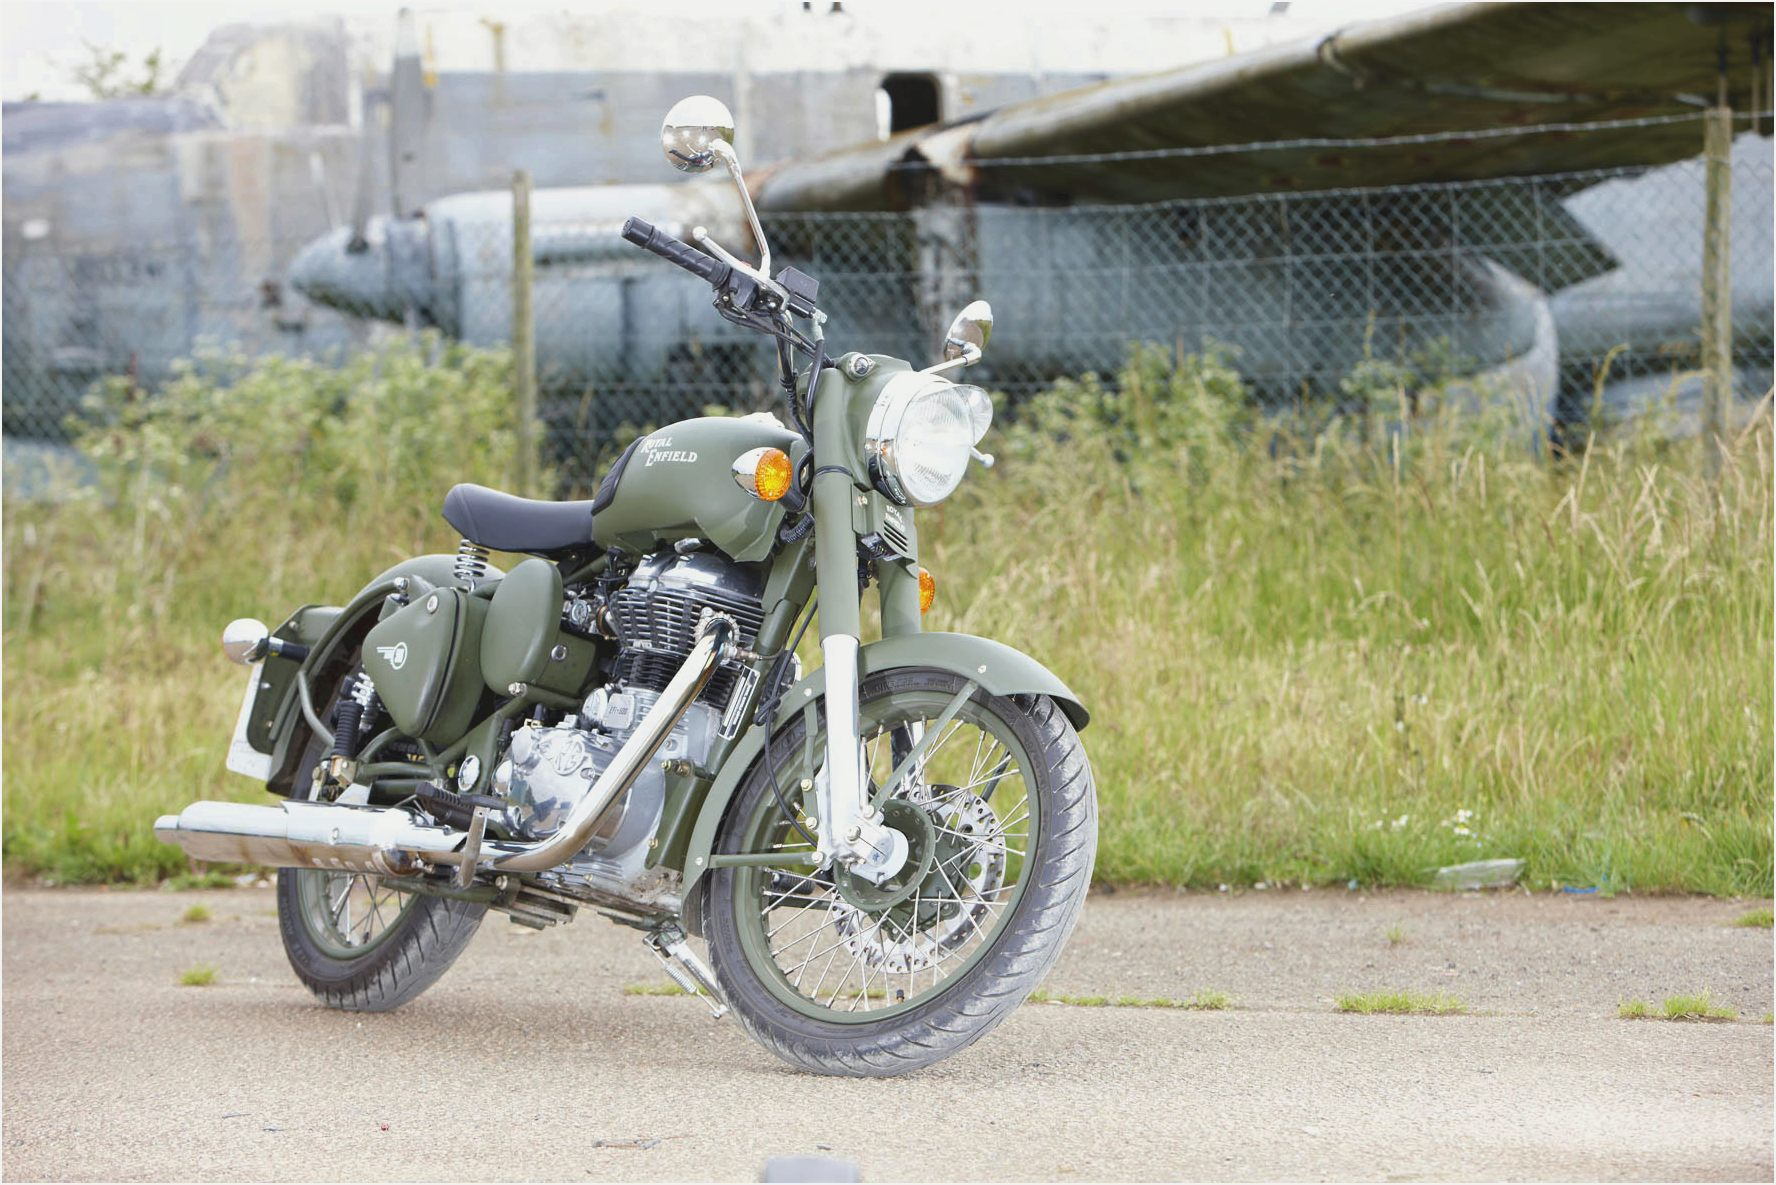 Royal Enfield Bullet 500 Army 2007 images #127490